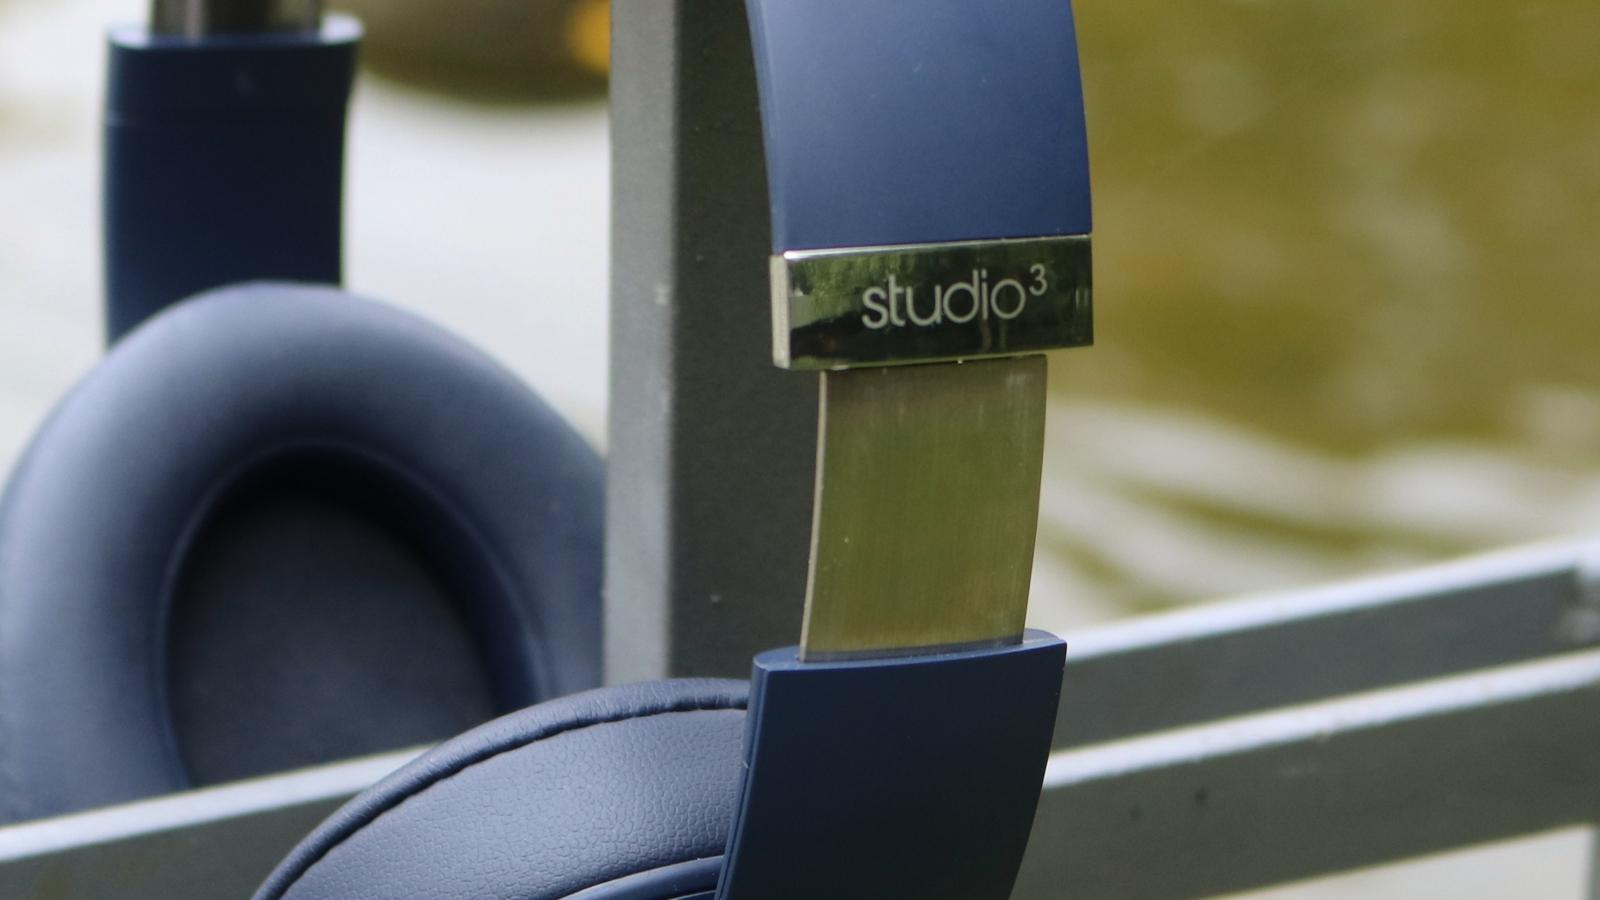 Studio 3 Wireless 02